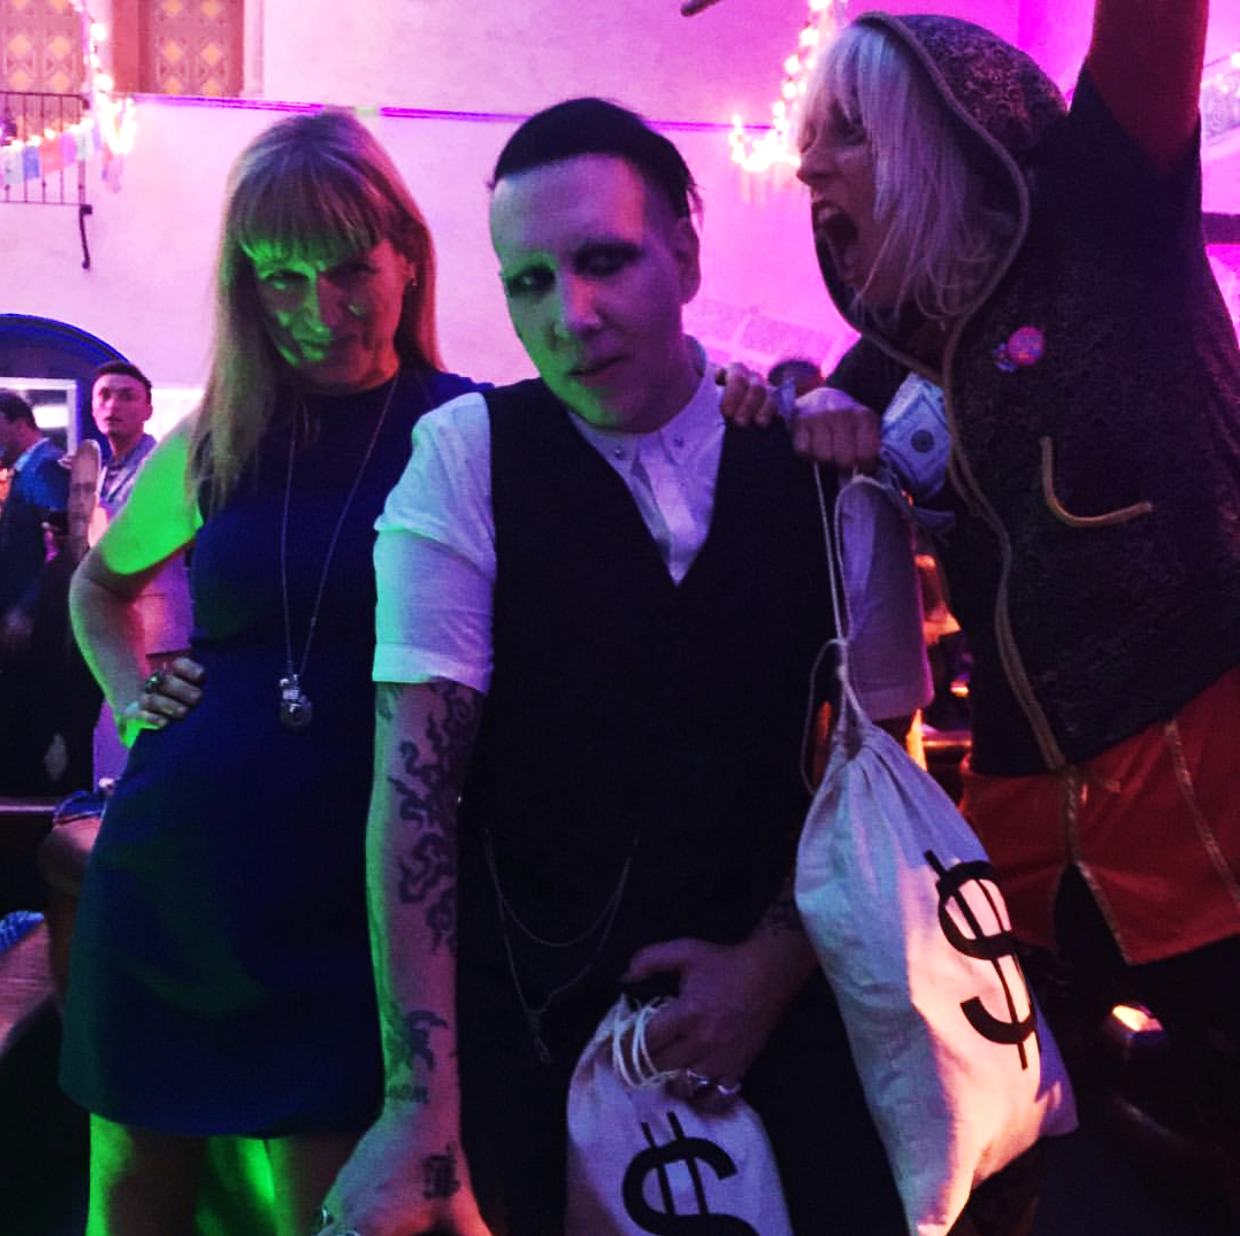 masterminds-movie-premiere-party-catherine-hardwicke-marilyn-manson